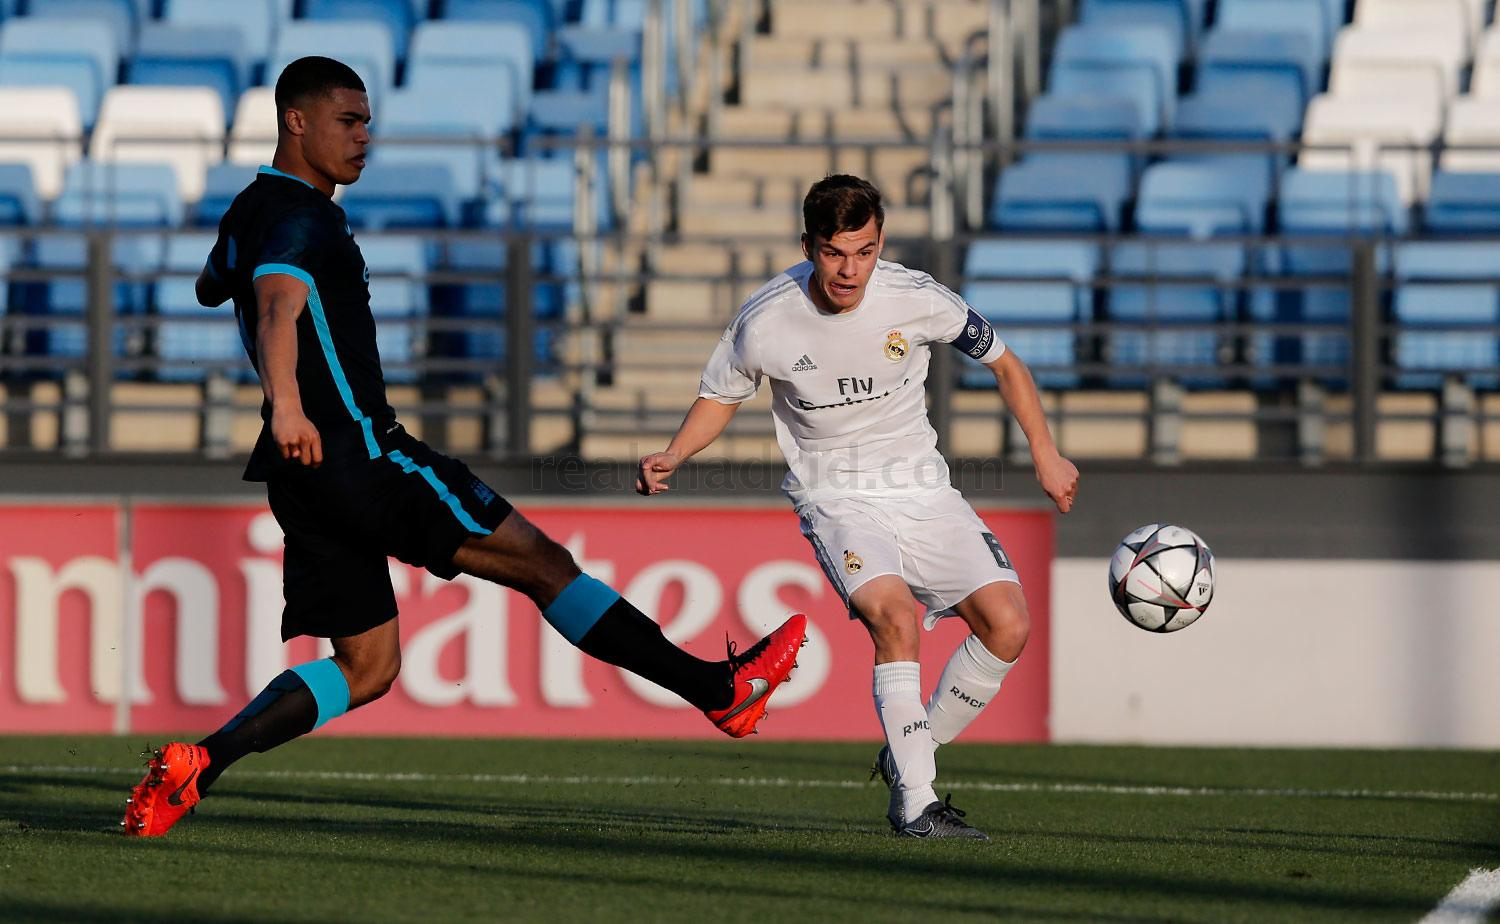 Real Madrid - Juvenil A - Manchester City - 23-02-2016